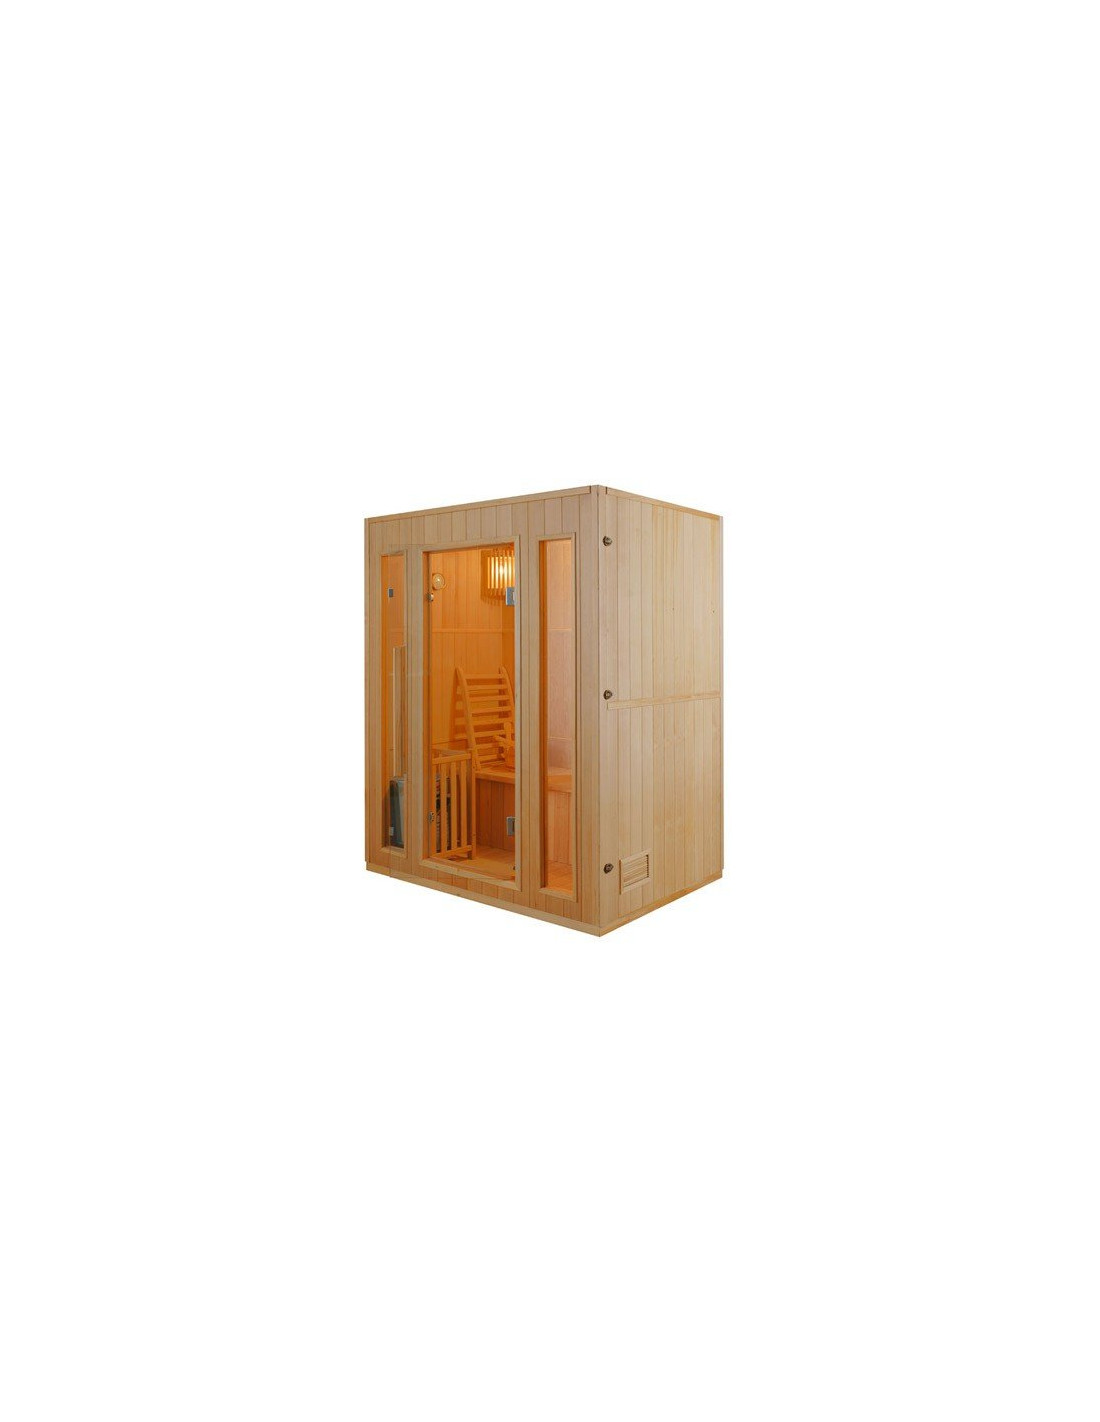 sauna vapeur zen france sauna 2 5 places. Black Bedroom Furniture Sets. Home Design Ideas